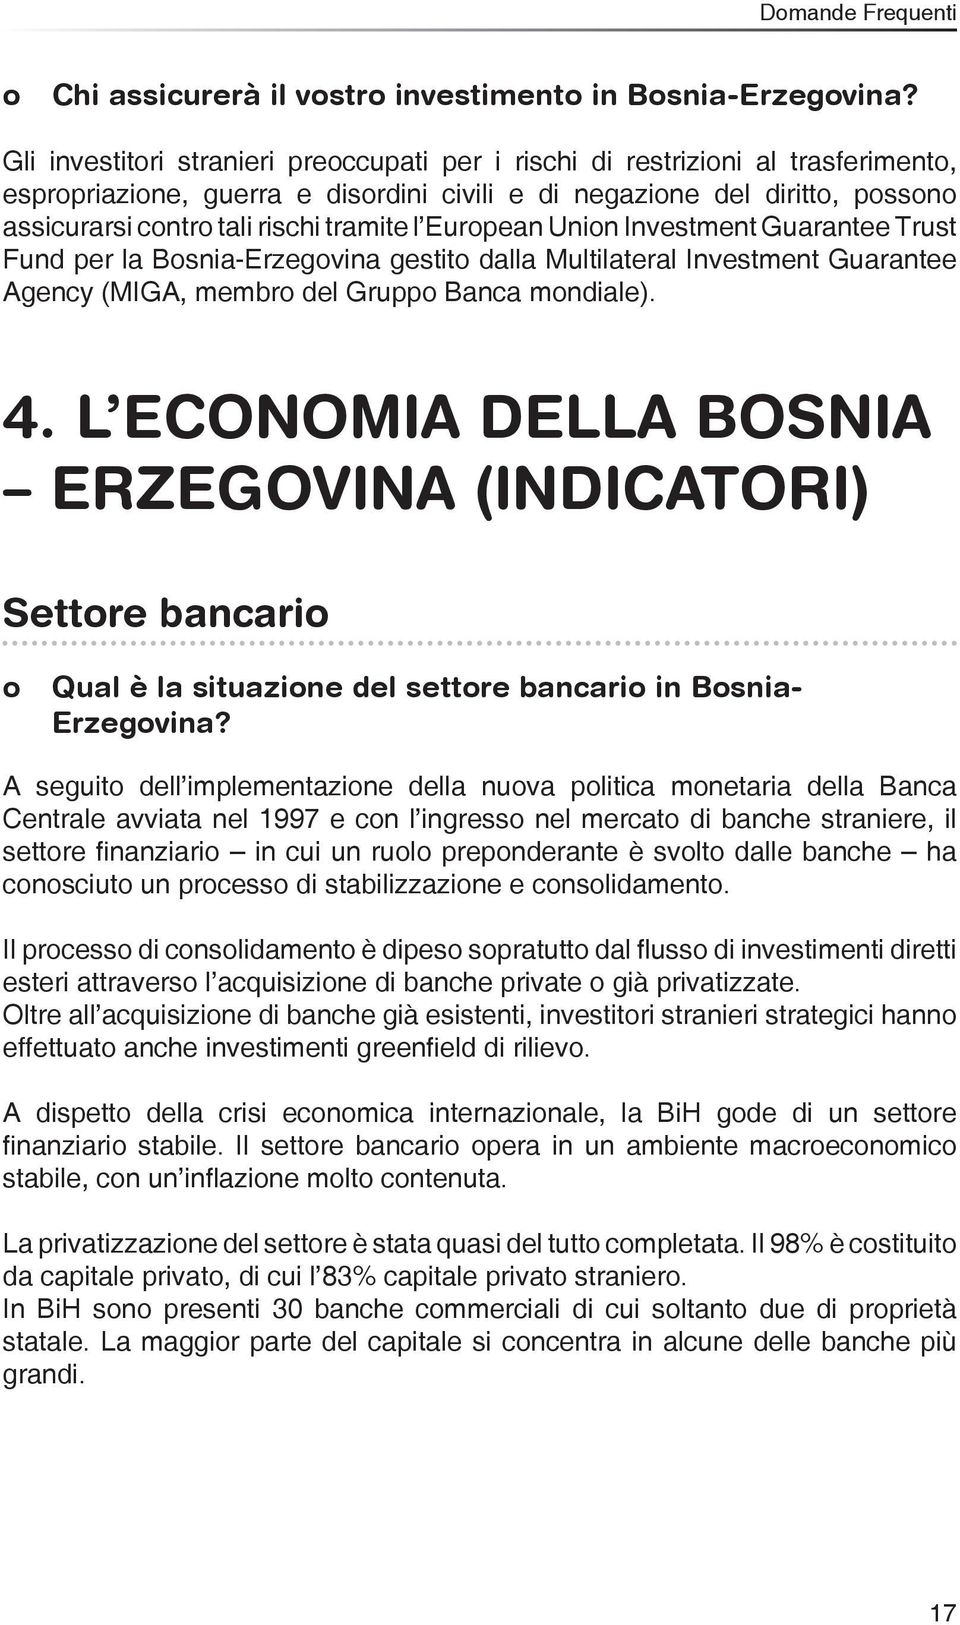 tramite l European Union Investment Guarantee Trust Fund per la Bosnia-Erzegovina gestito dalla Multilateral Investment Guarantee Agency (MIGA, membro del Gruppo Banca mondiale). 4.